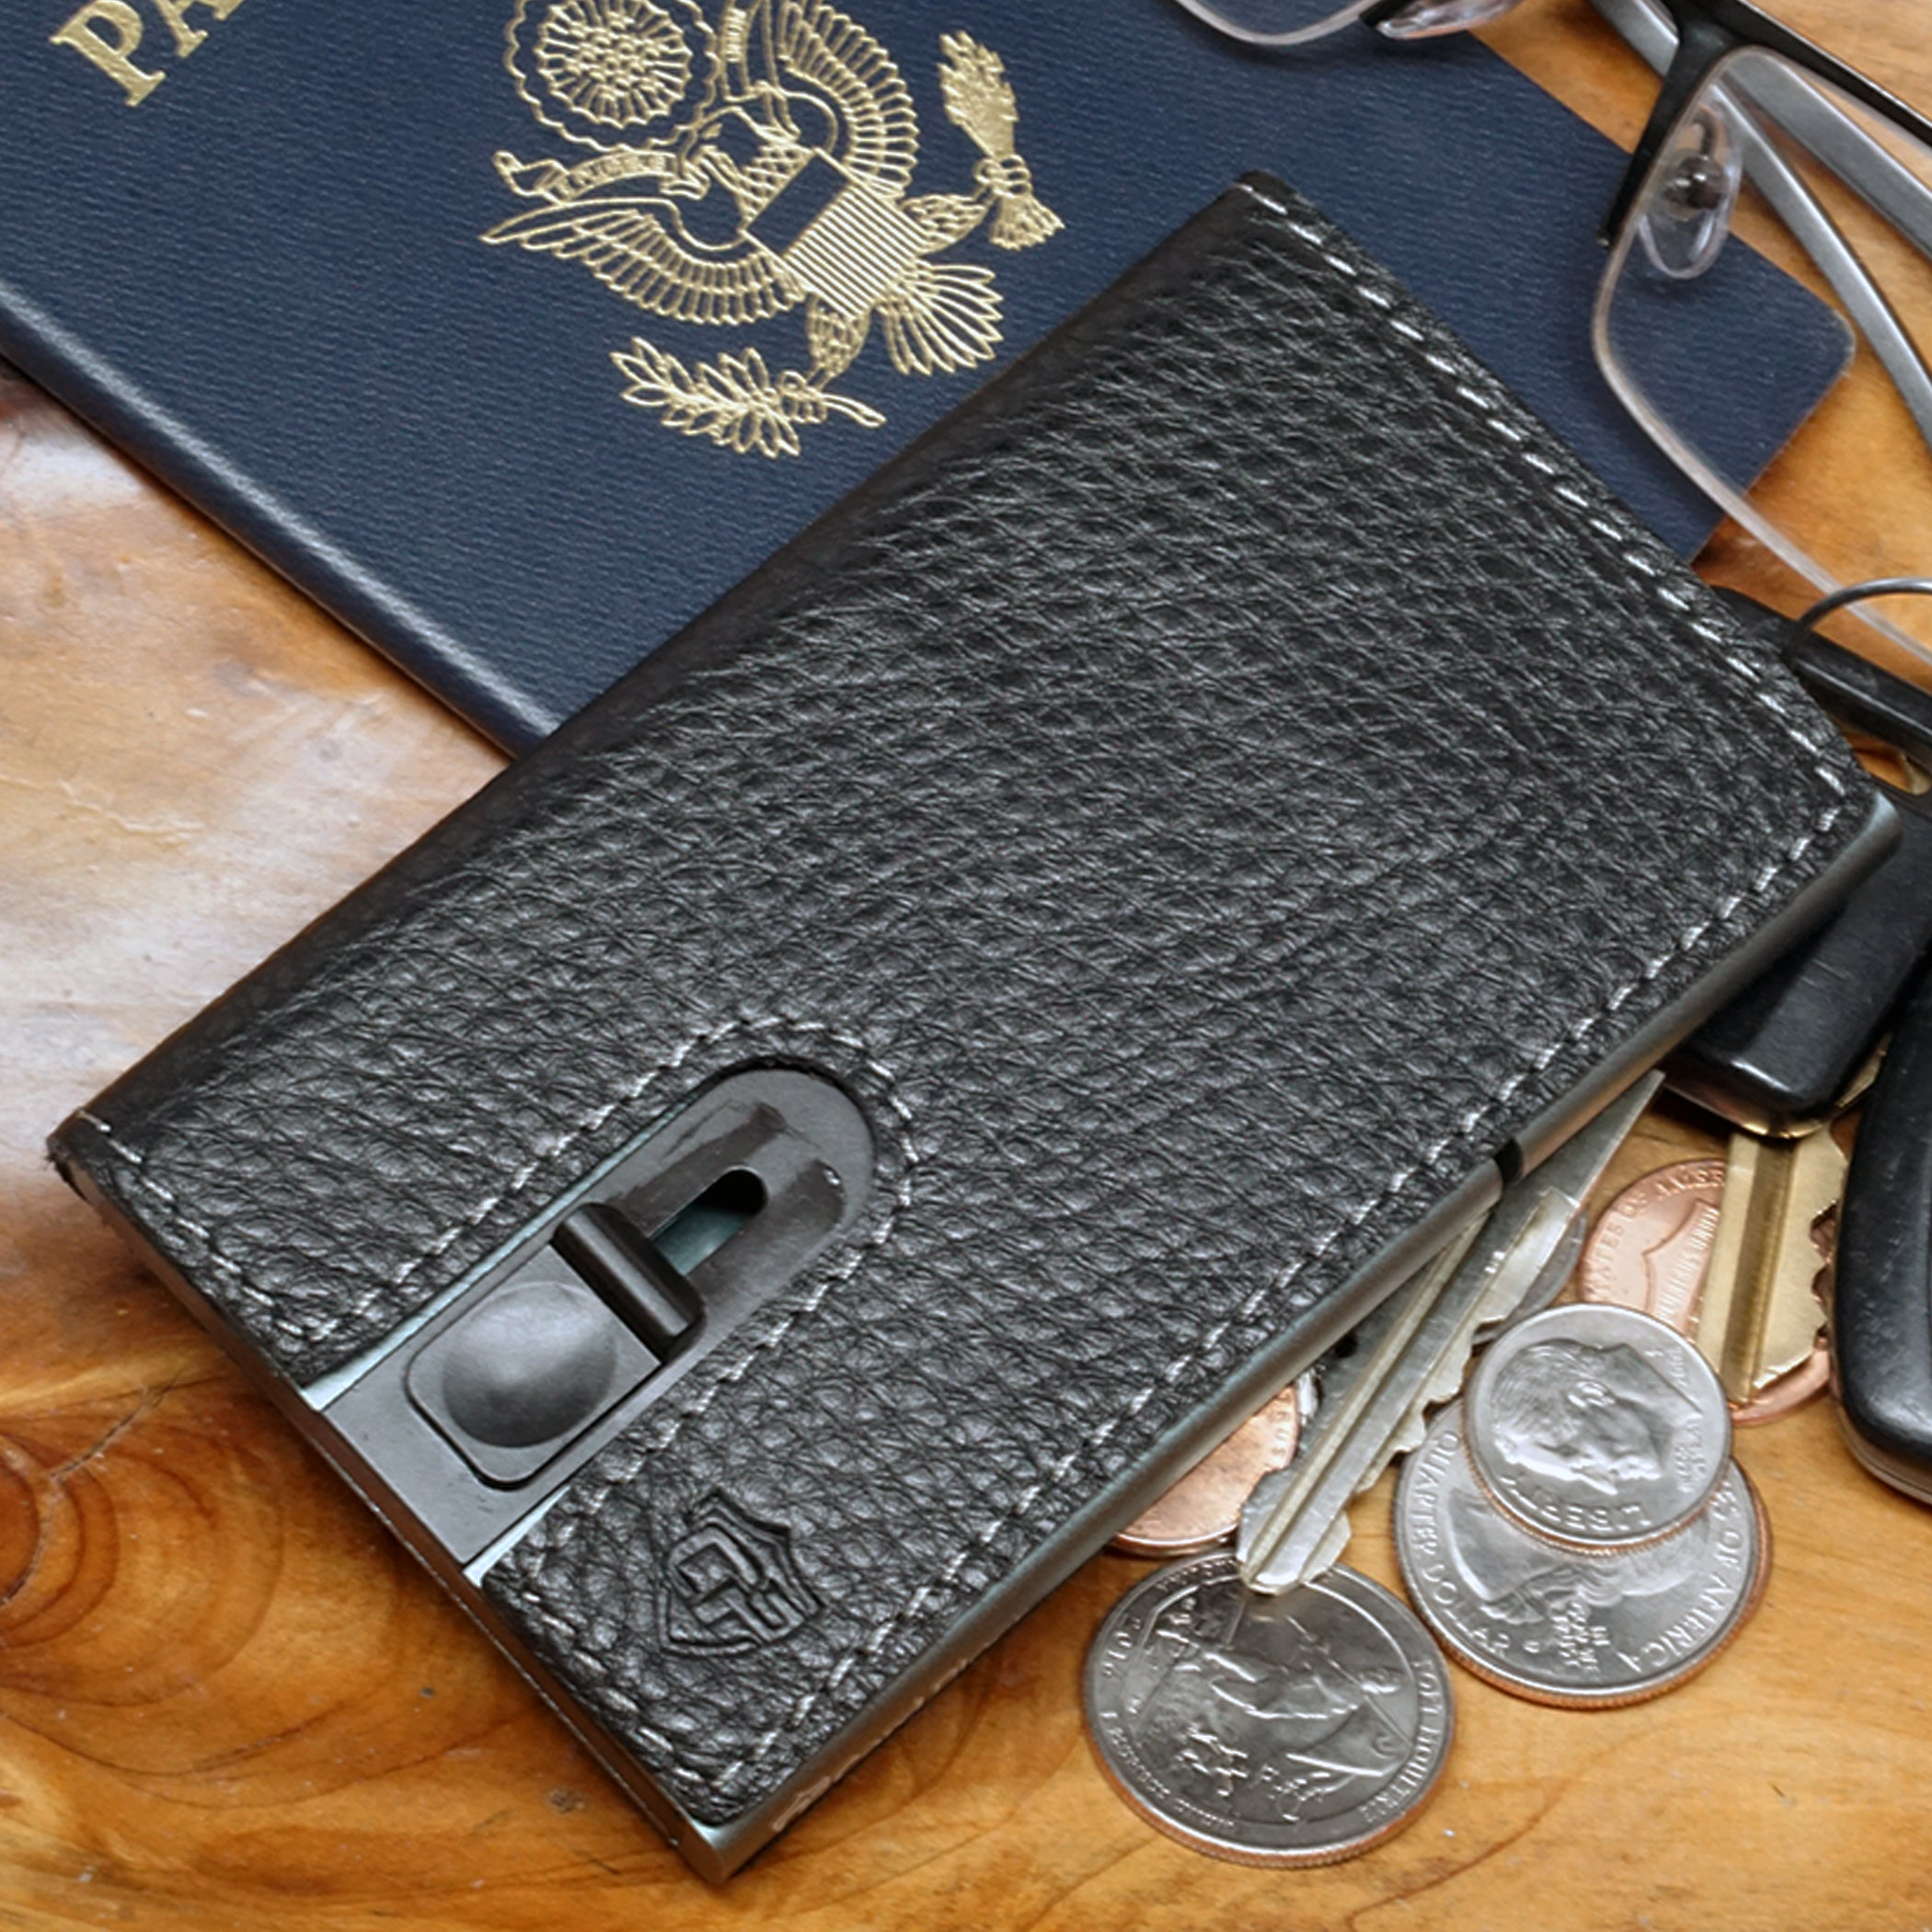 Card Blocr Credit Card Holder in Titanium Color Wrapped in Black Leather